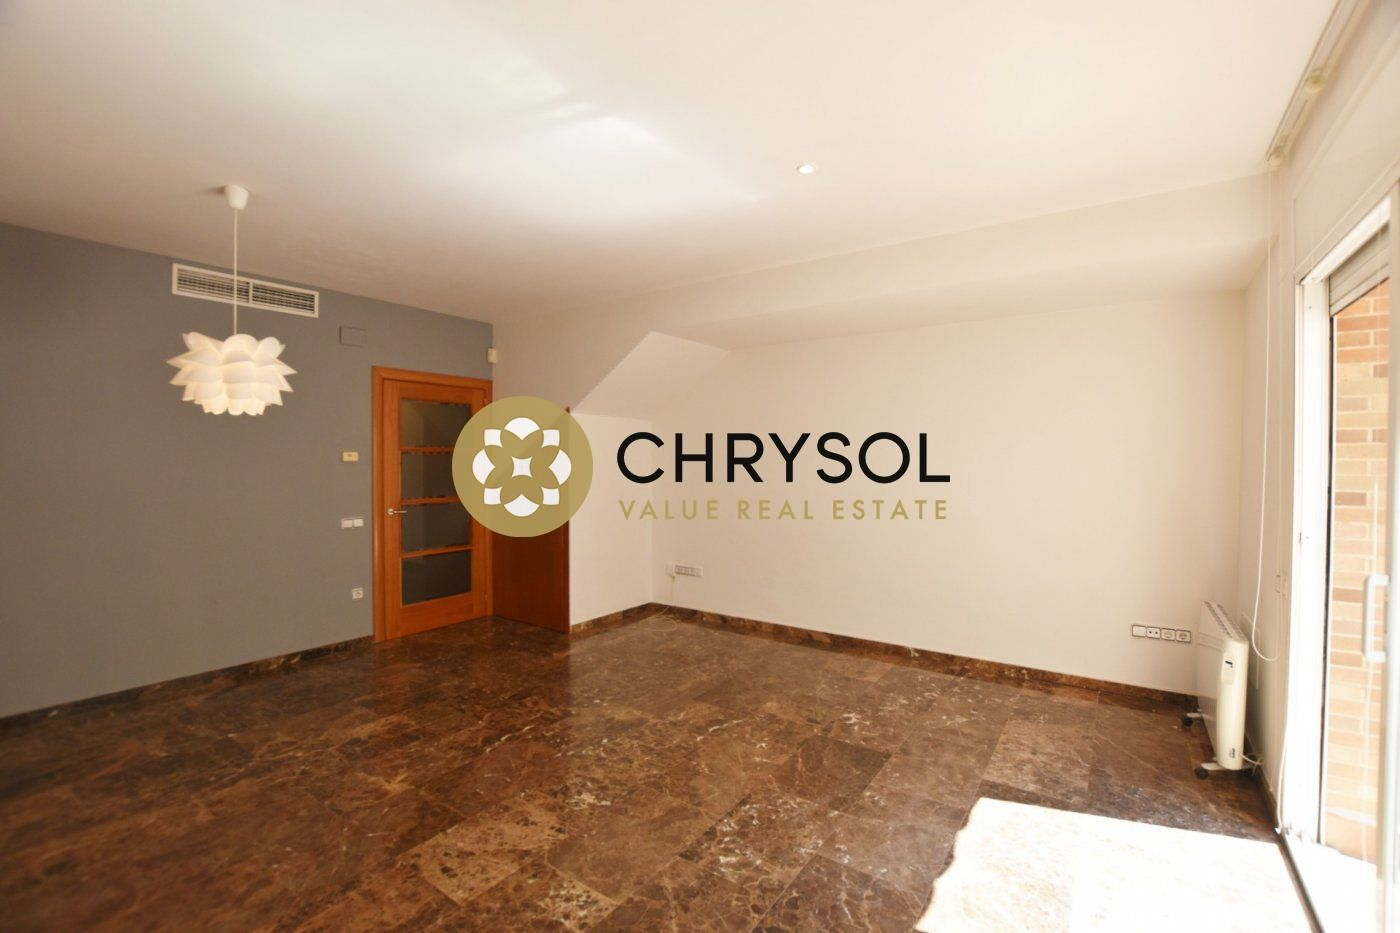 Photogallery - 28 - Chrysol Value